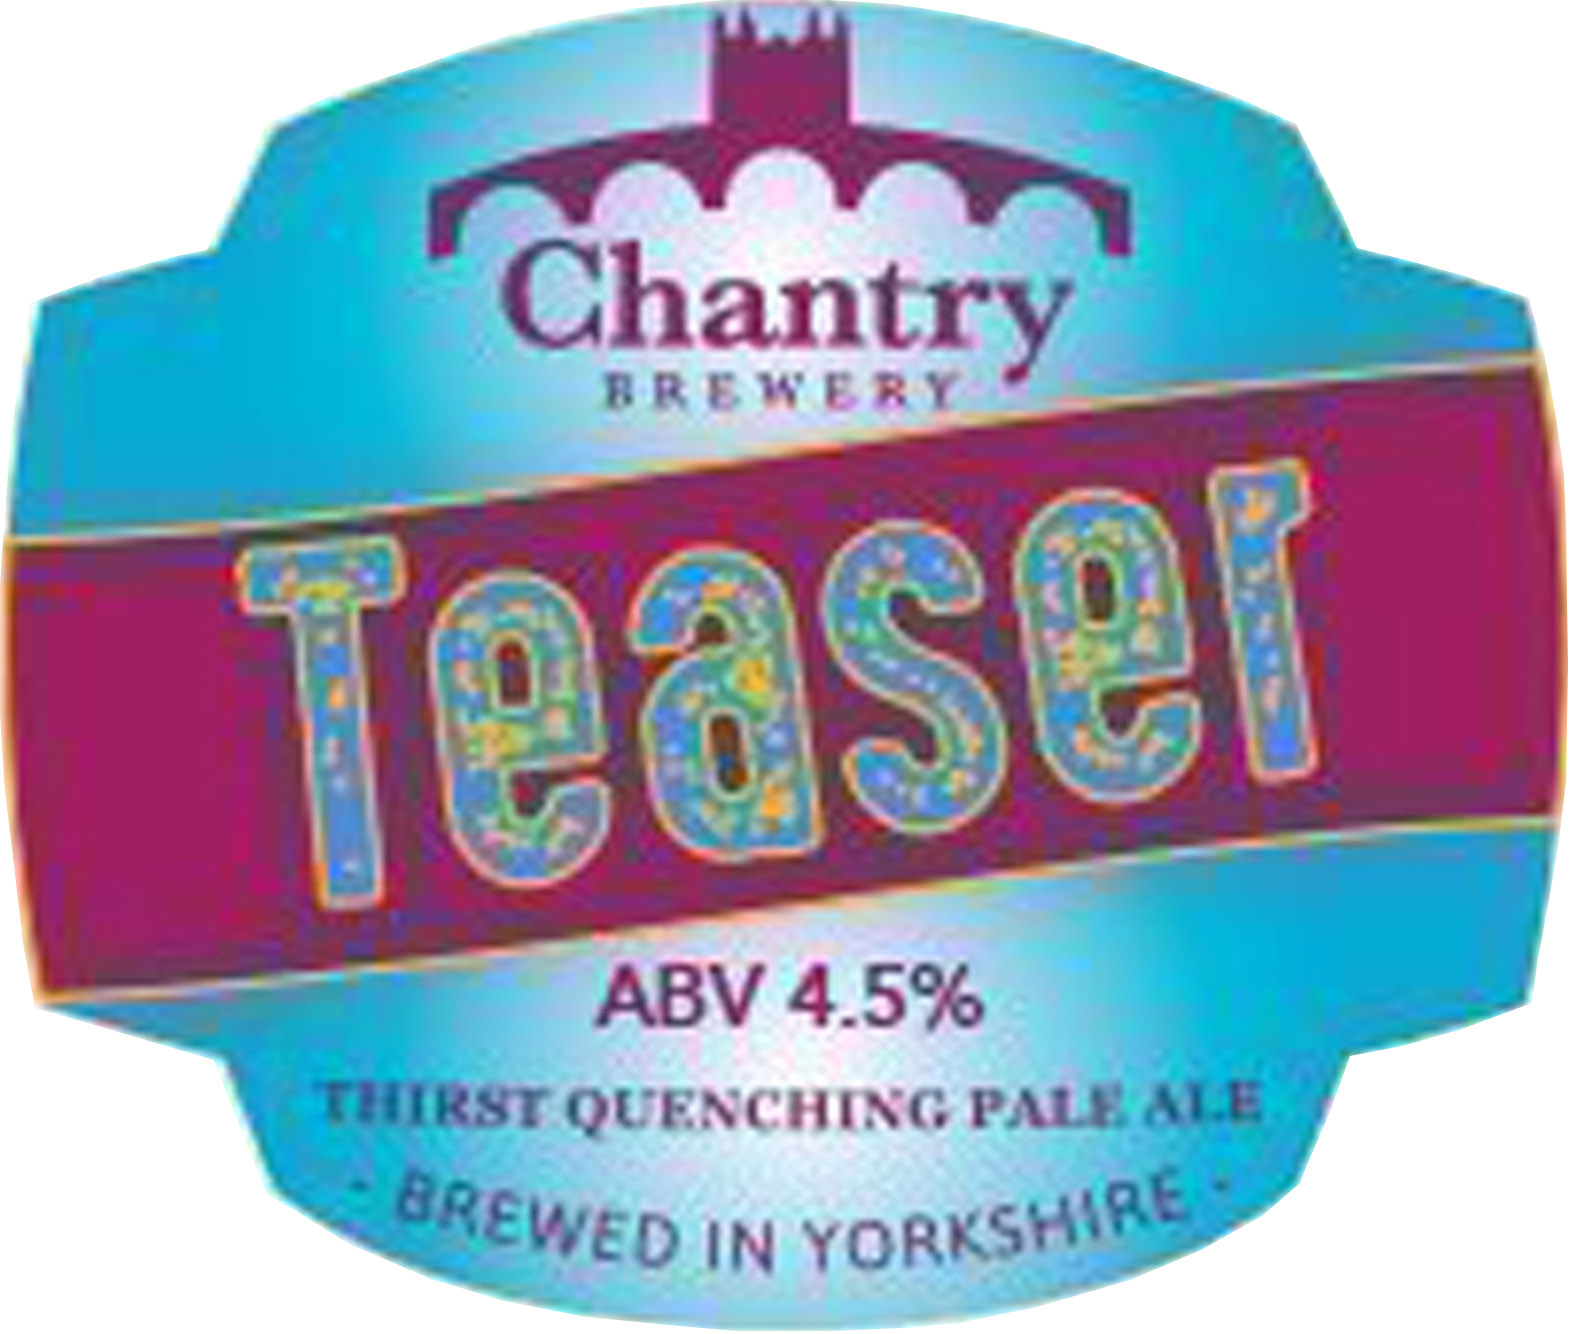 Chantry Brewery Teaser